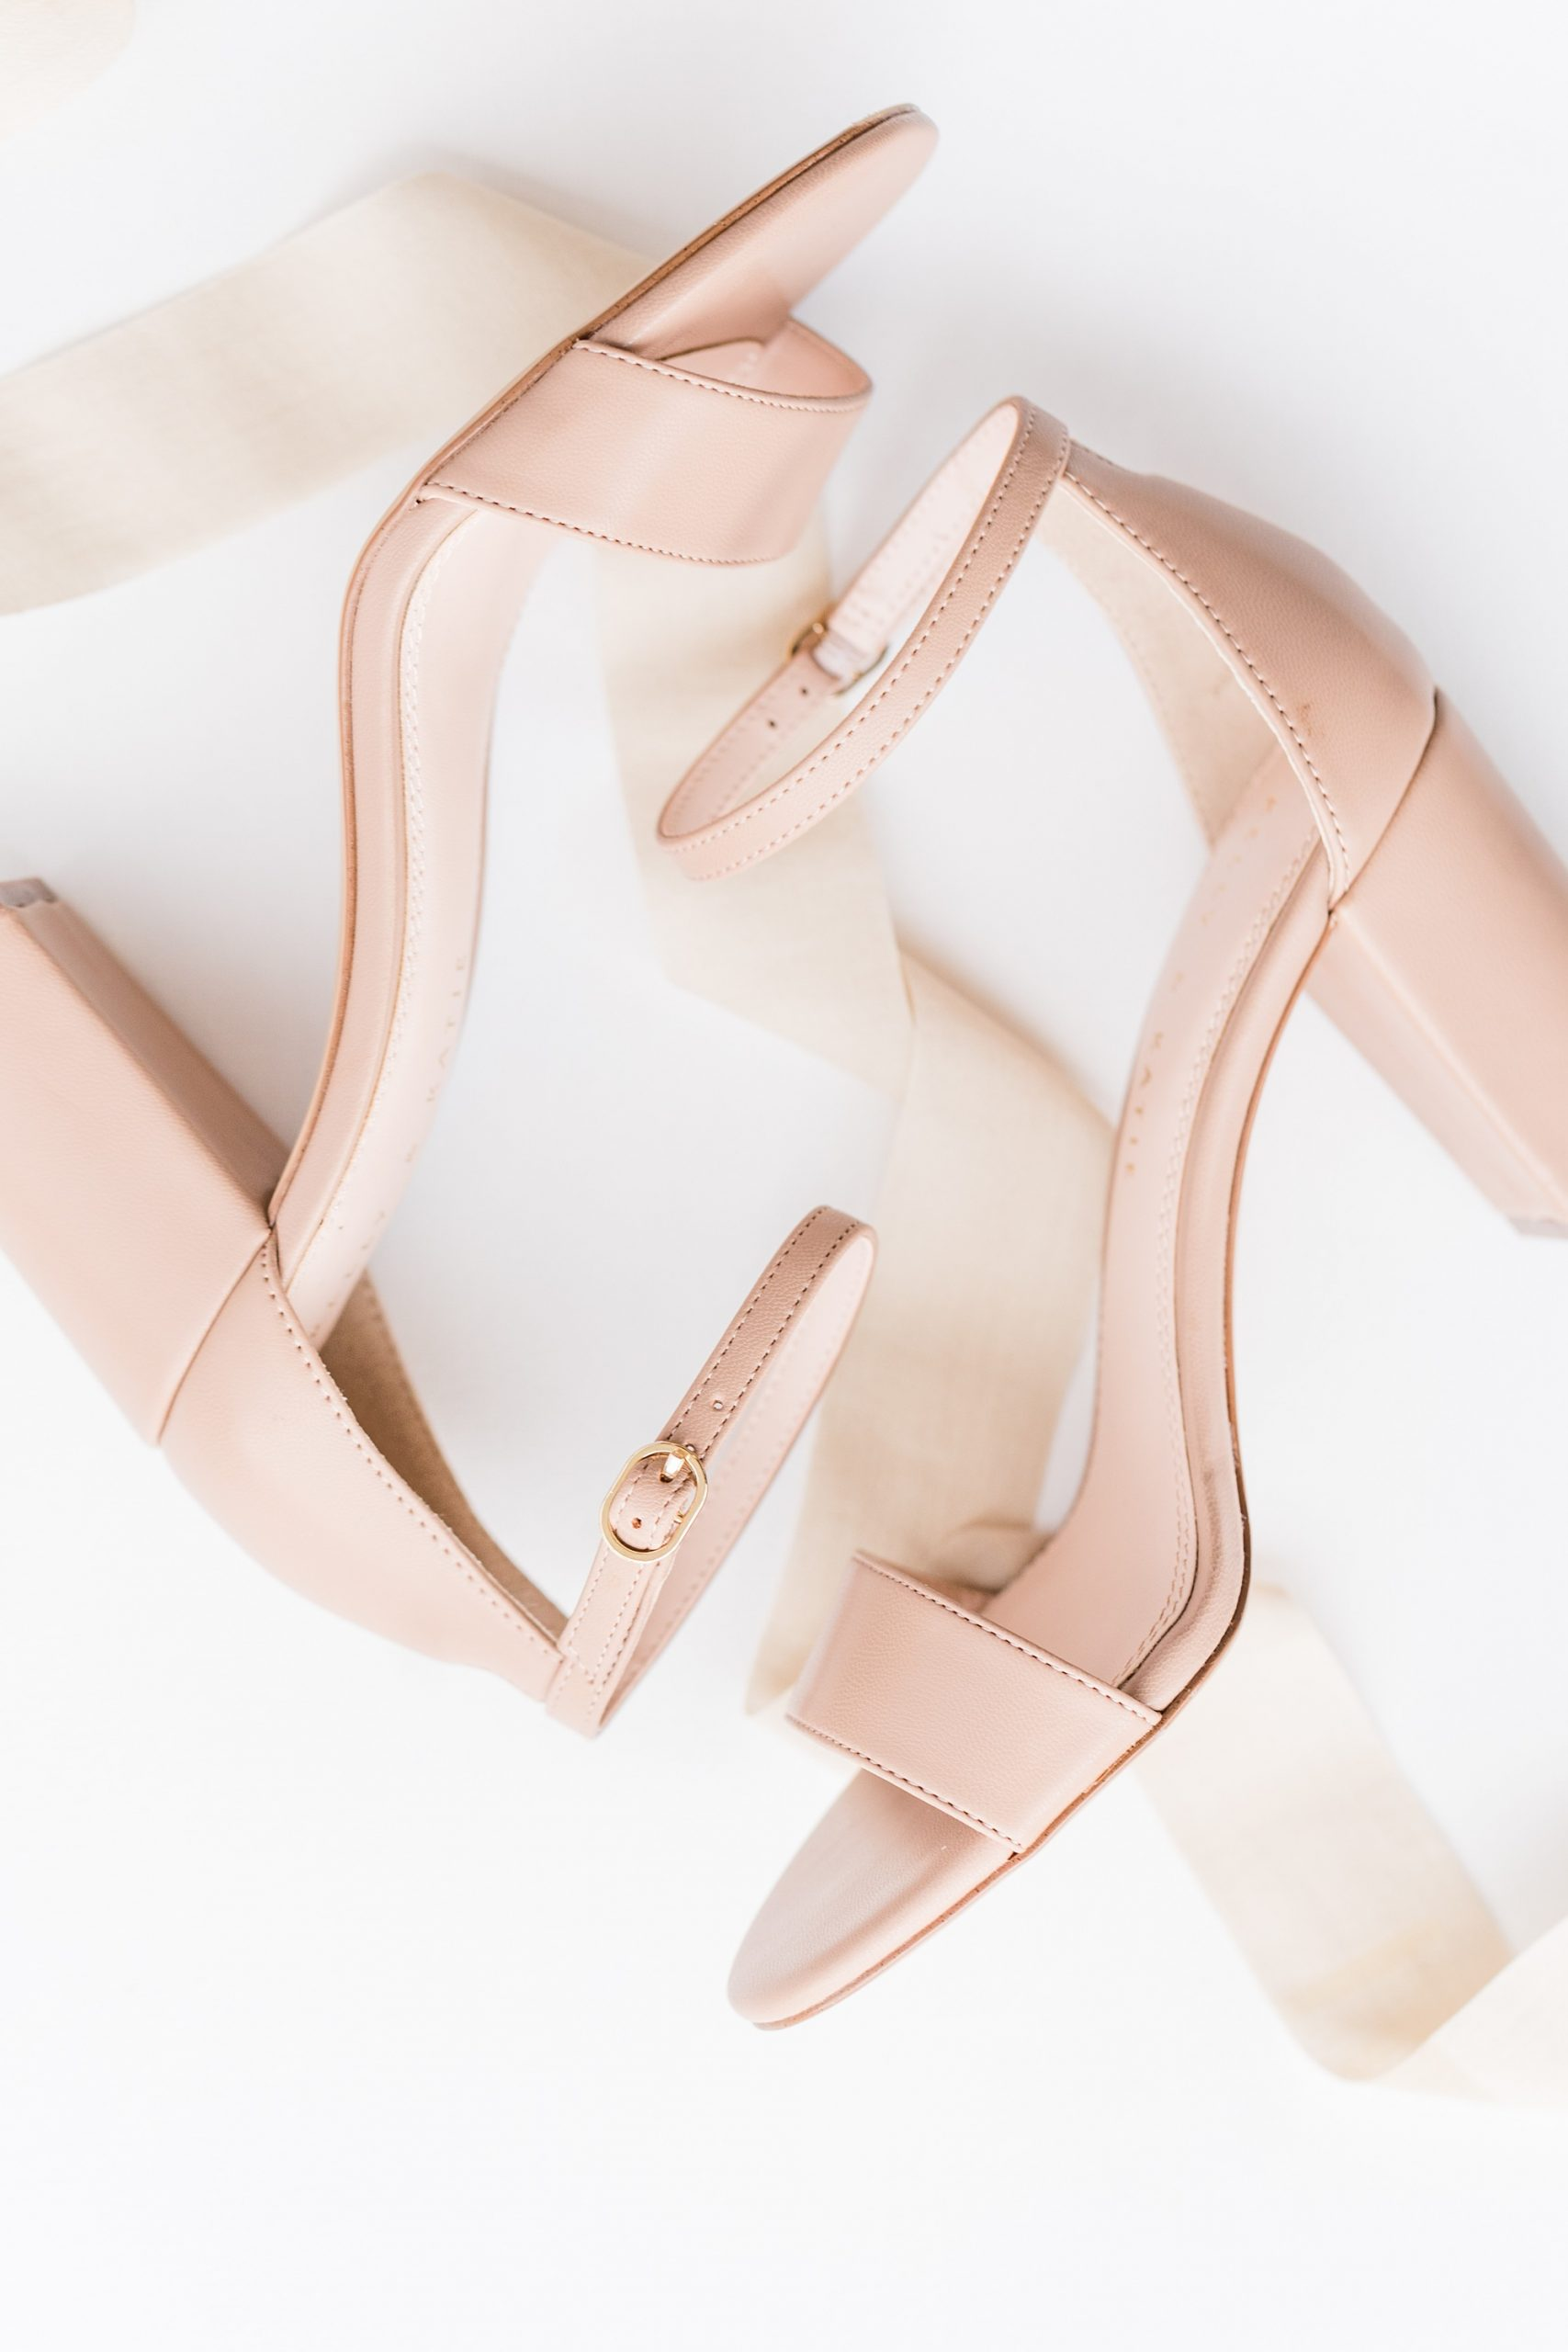 blush heels for the bride for Alabama wedding day